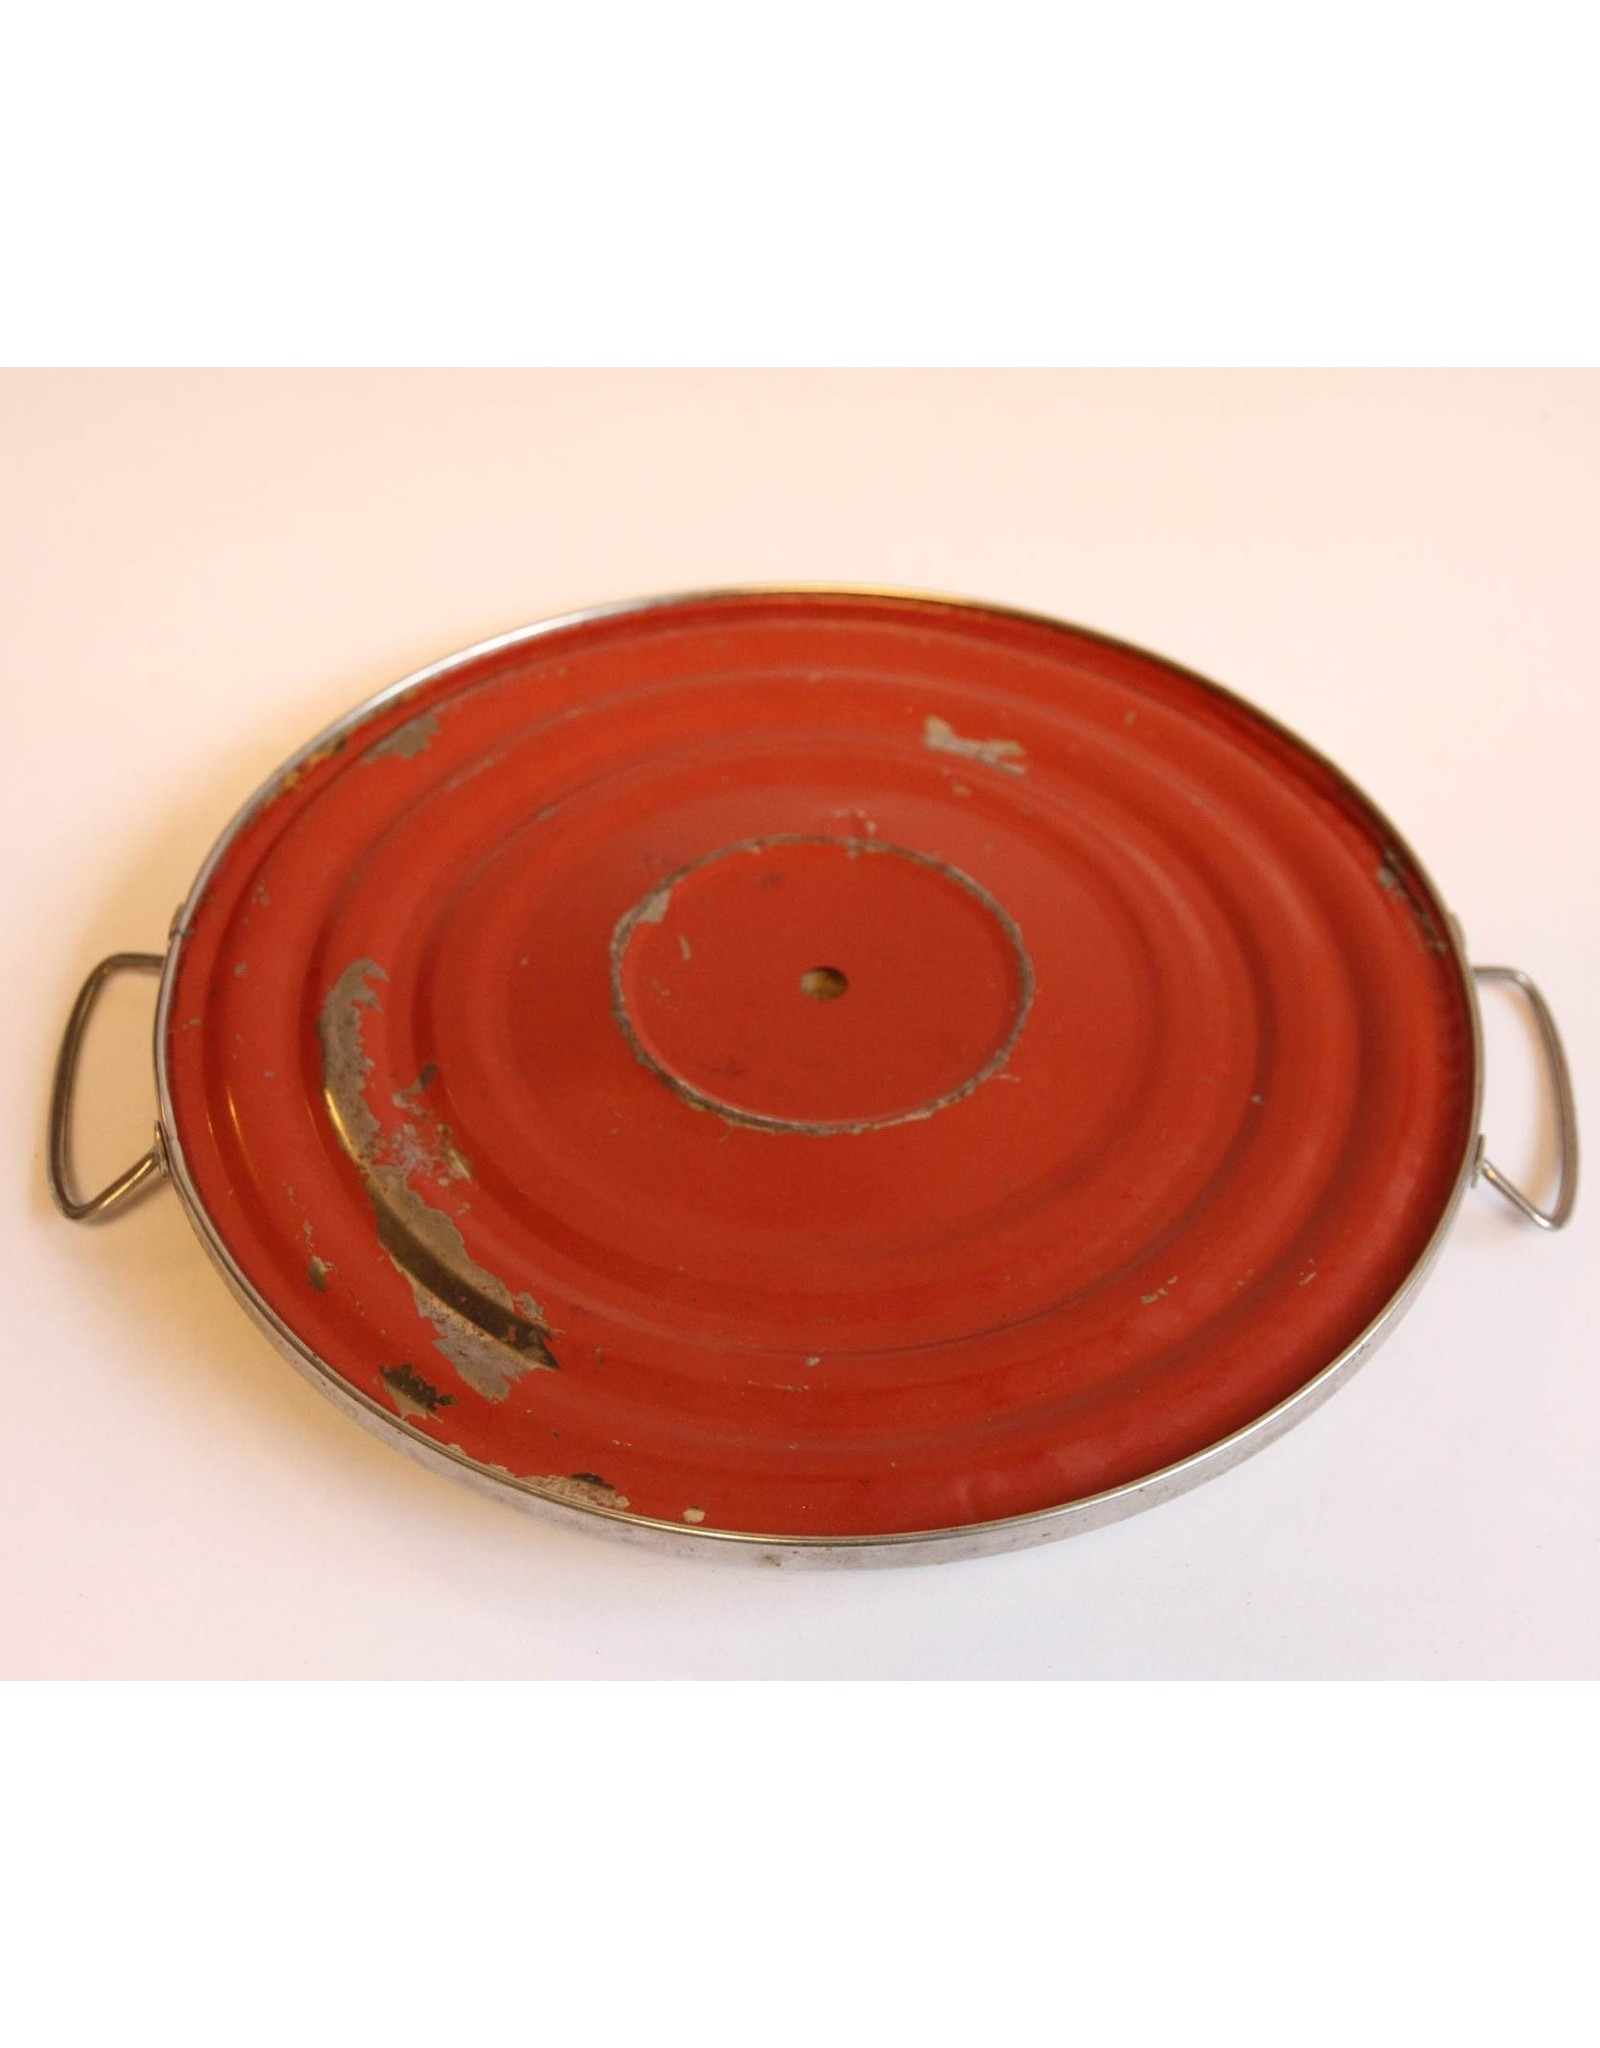 Tray - round, two handles, rose